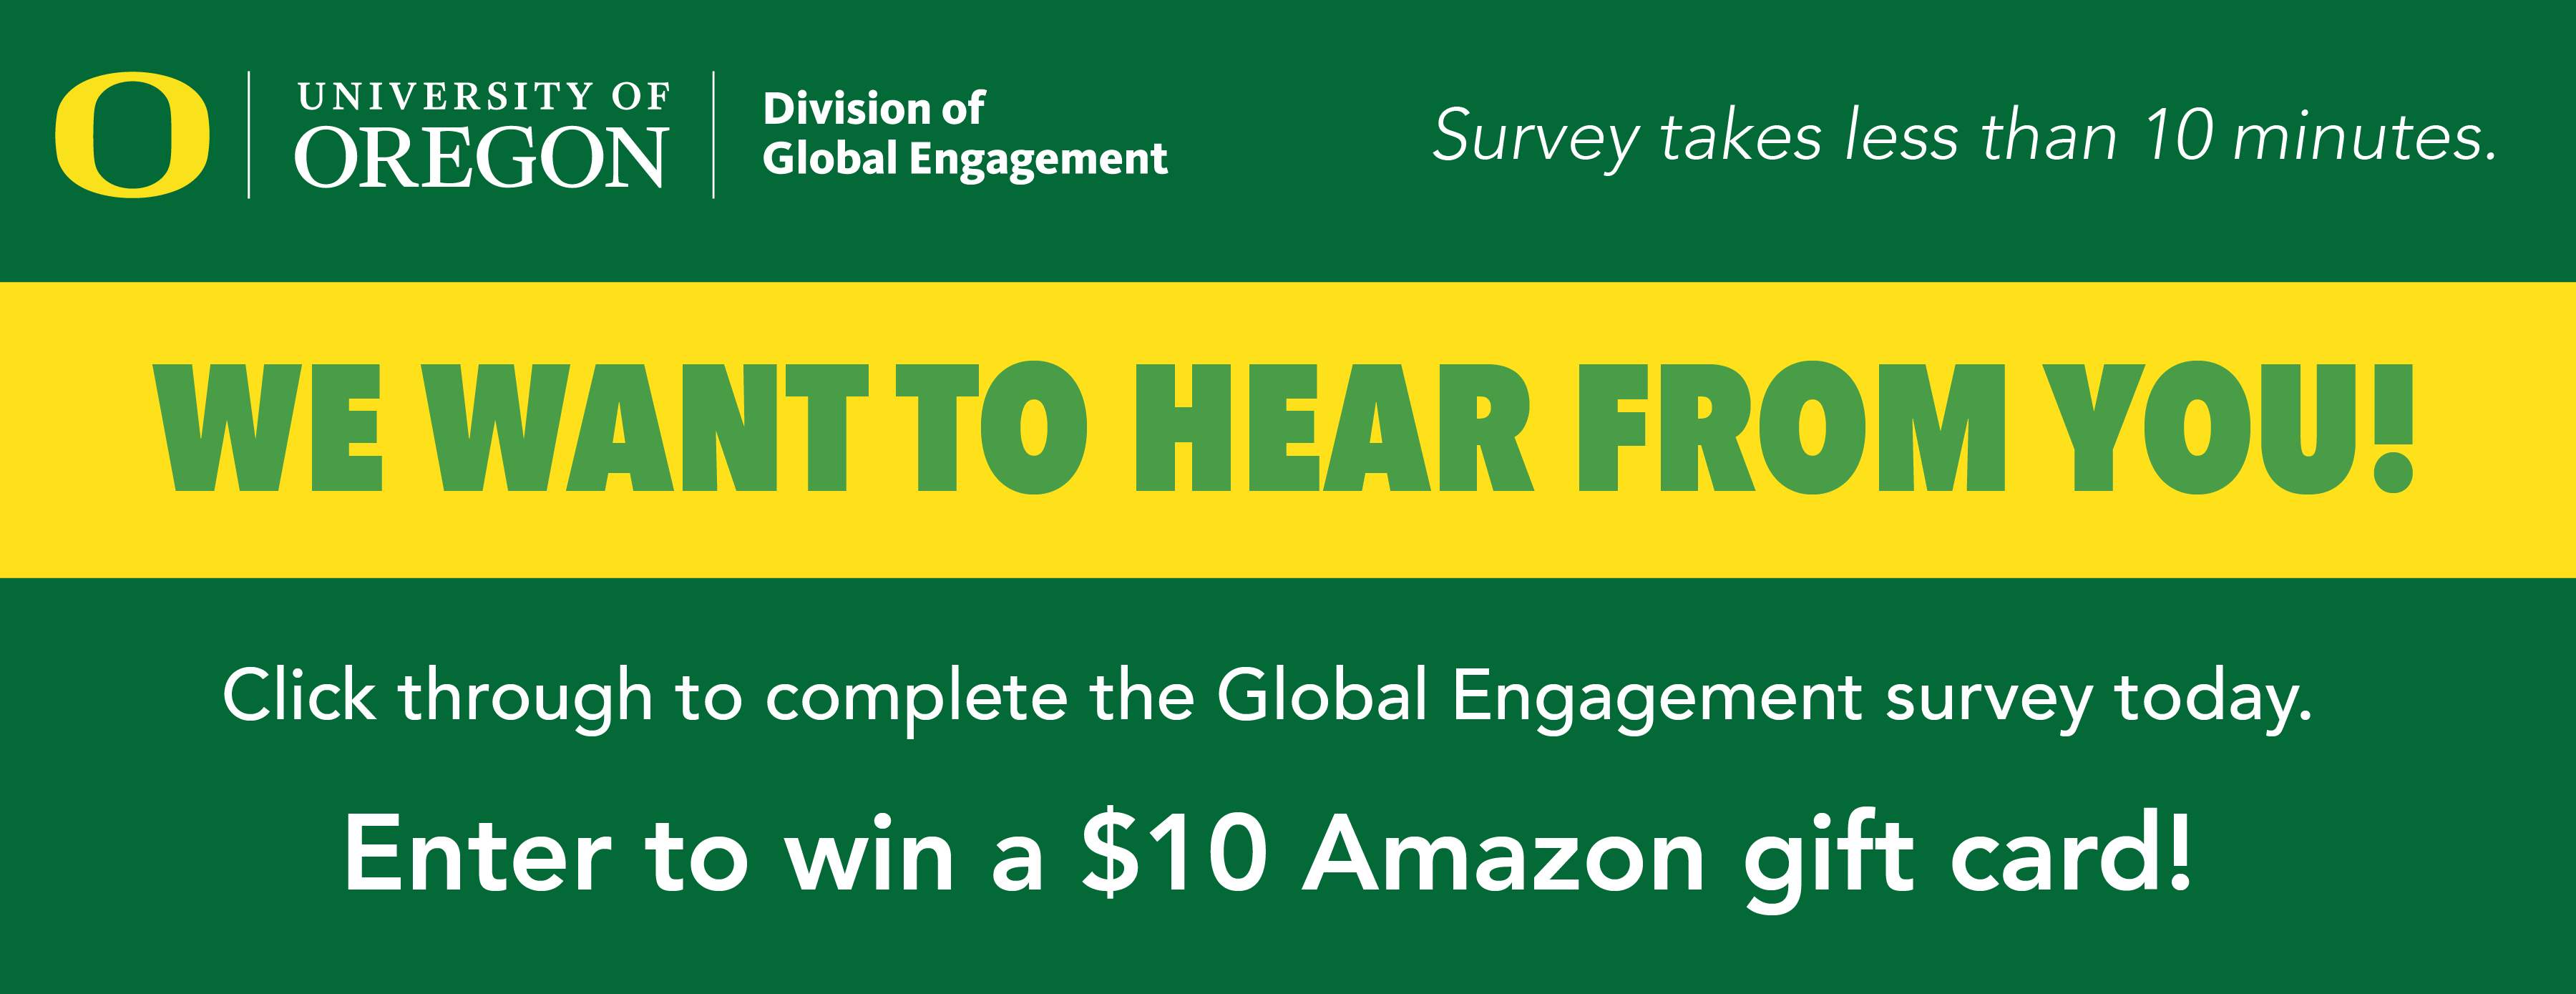 complete the global engagement survey